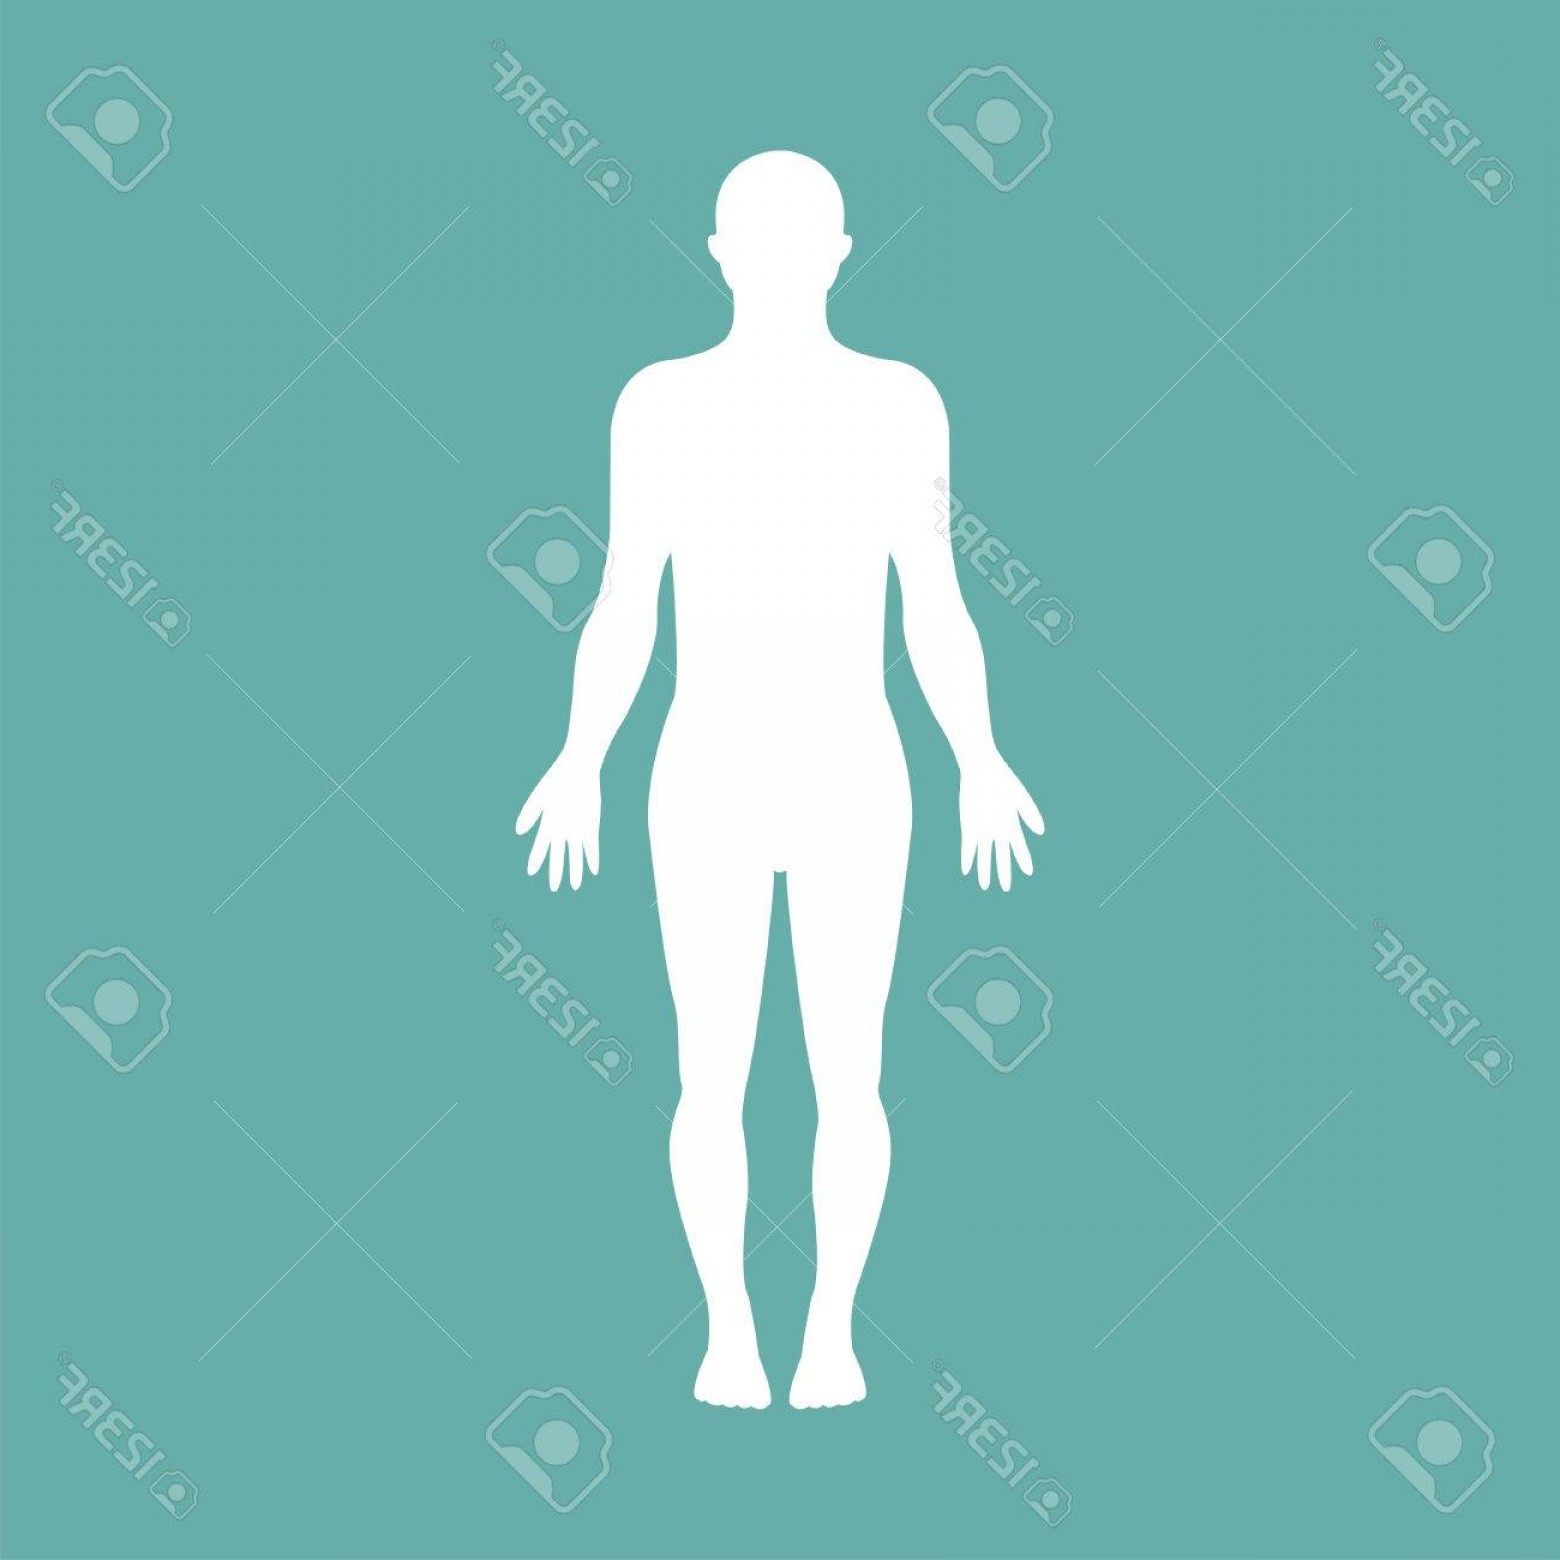 Male Human Vector: Photostock Vector Male Human Body Silhouette With Shadow Vector Illustration